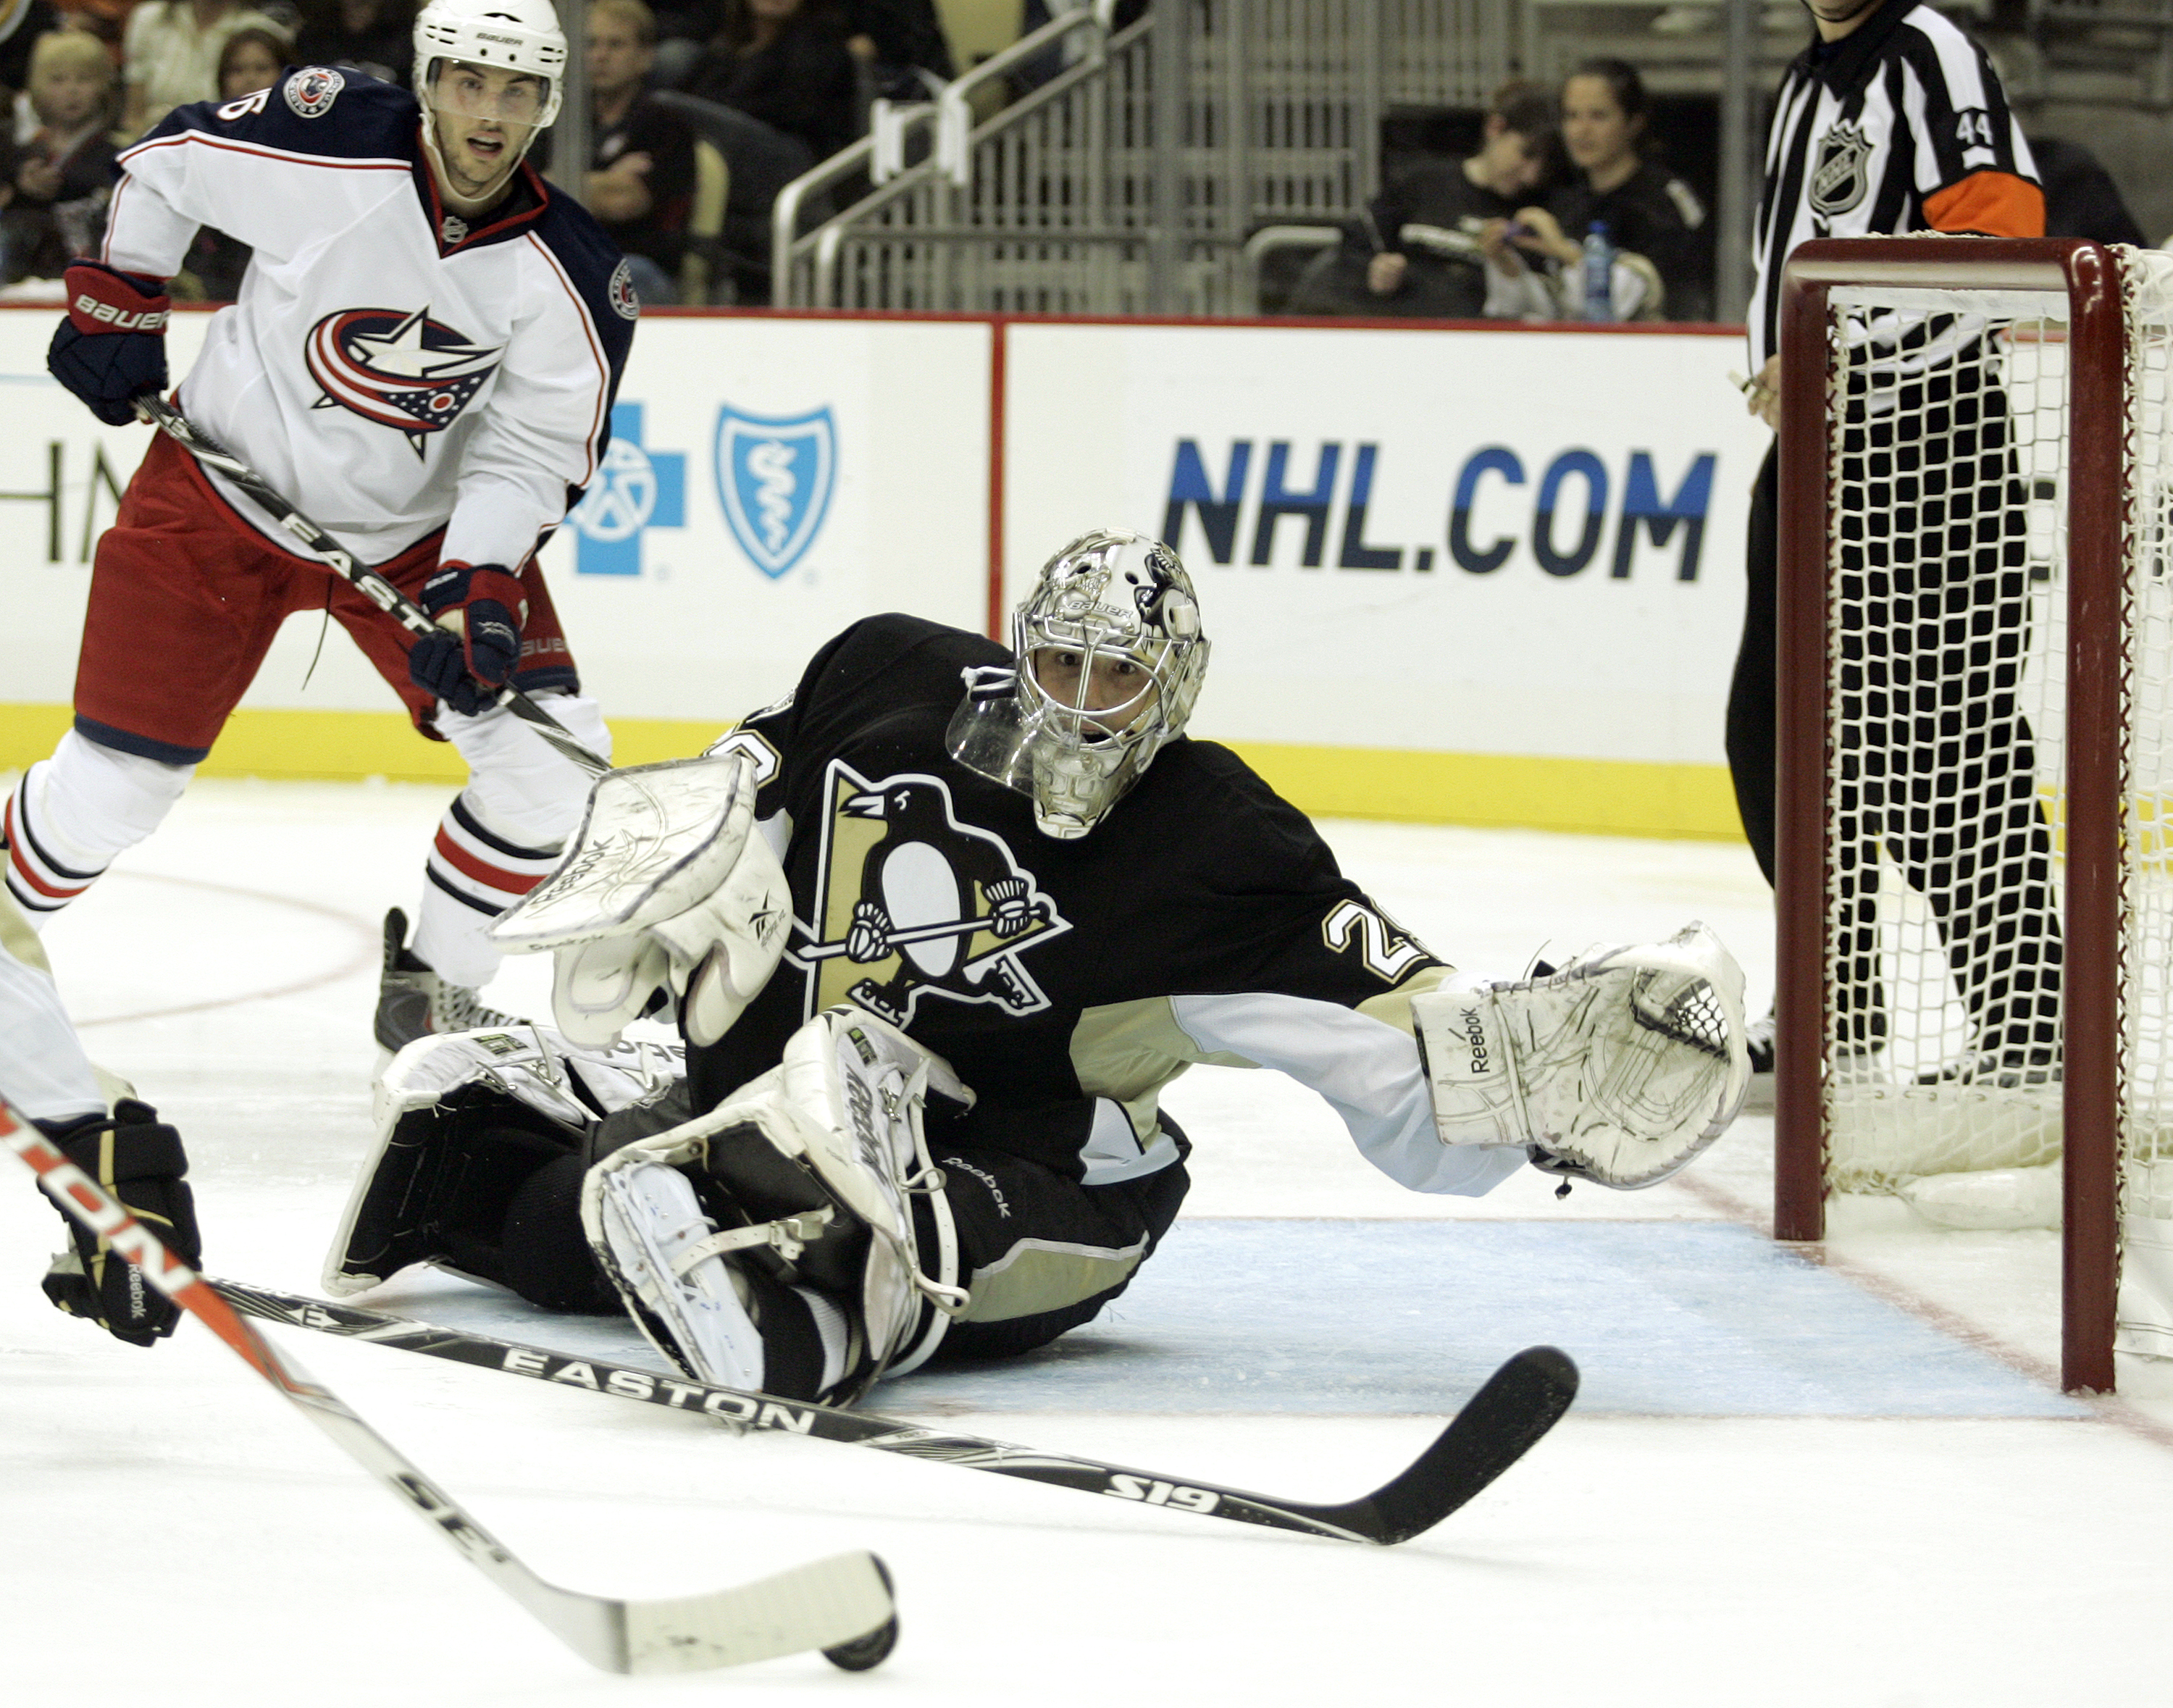 PITTSBURGH - SEPTEMBER 25:  Marc-Andre Fleury #29 of the Pittsburgh Penguins eyes the puck against the Columbus Blue Jackets at Consol Energy Center on September 25, 2010 in Pittsburgh, Pennsylvania.  (Photo by Justin K. Aller/Getty Images)